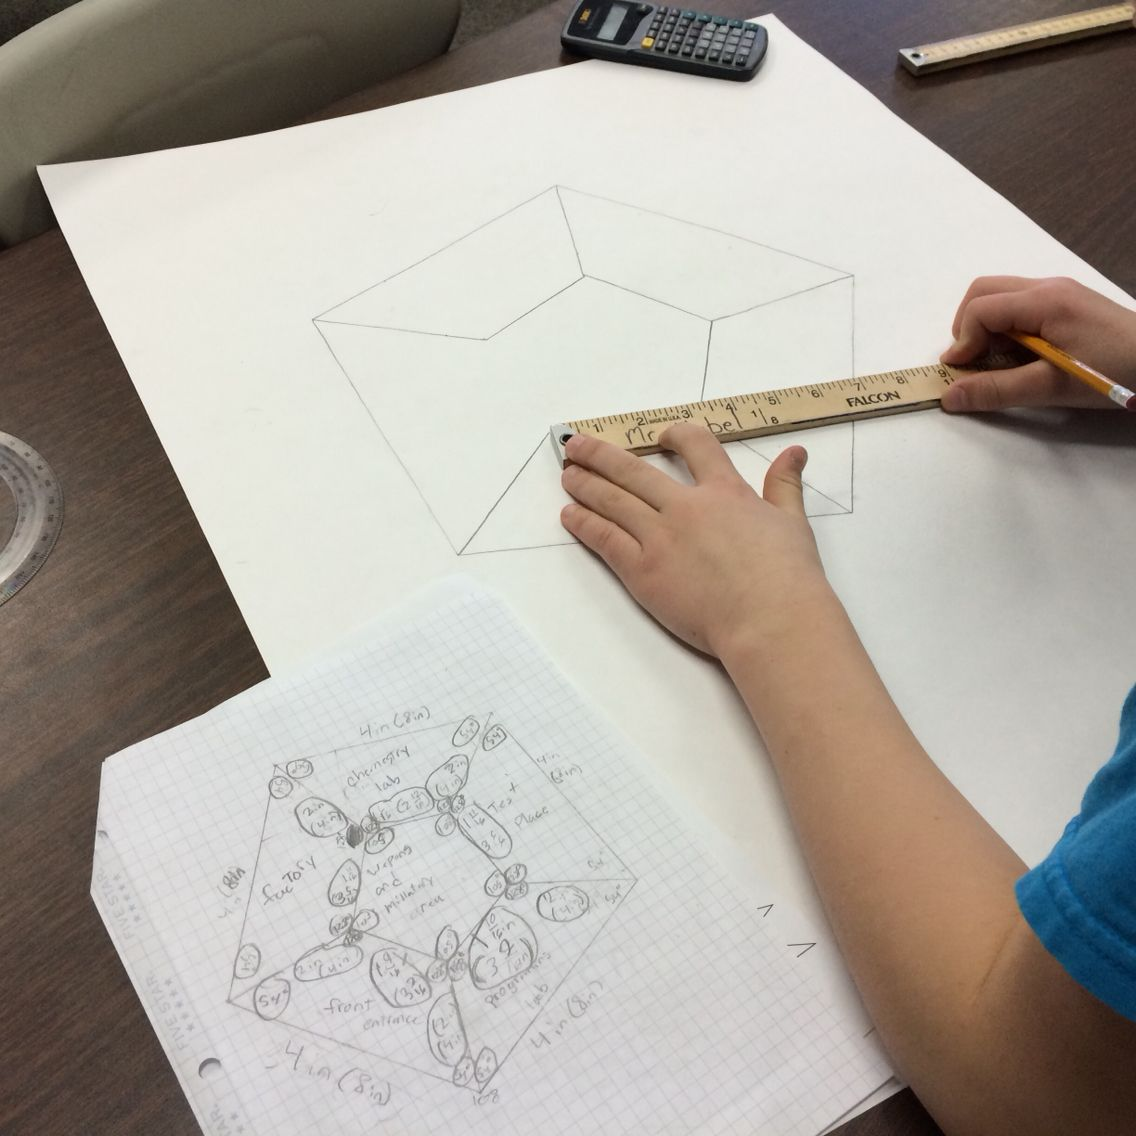 Free Blueprint Project Lesson Plan For 6th Grade Math Students Create A Building Design On